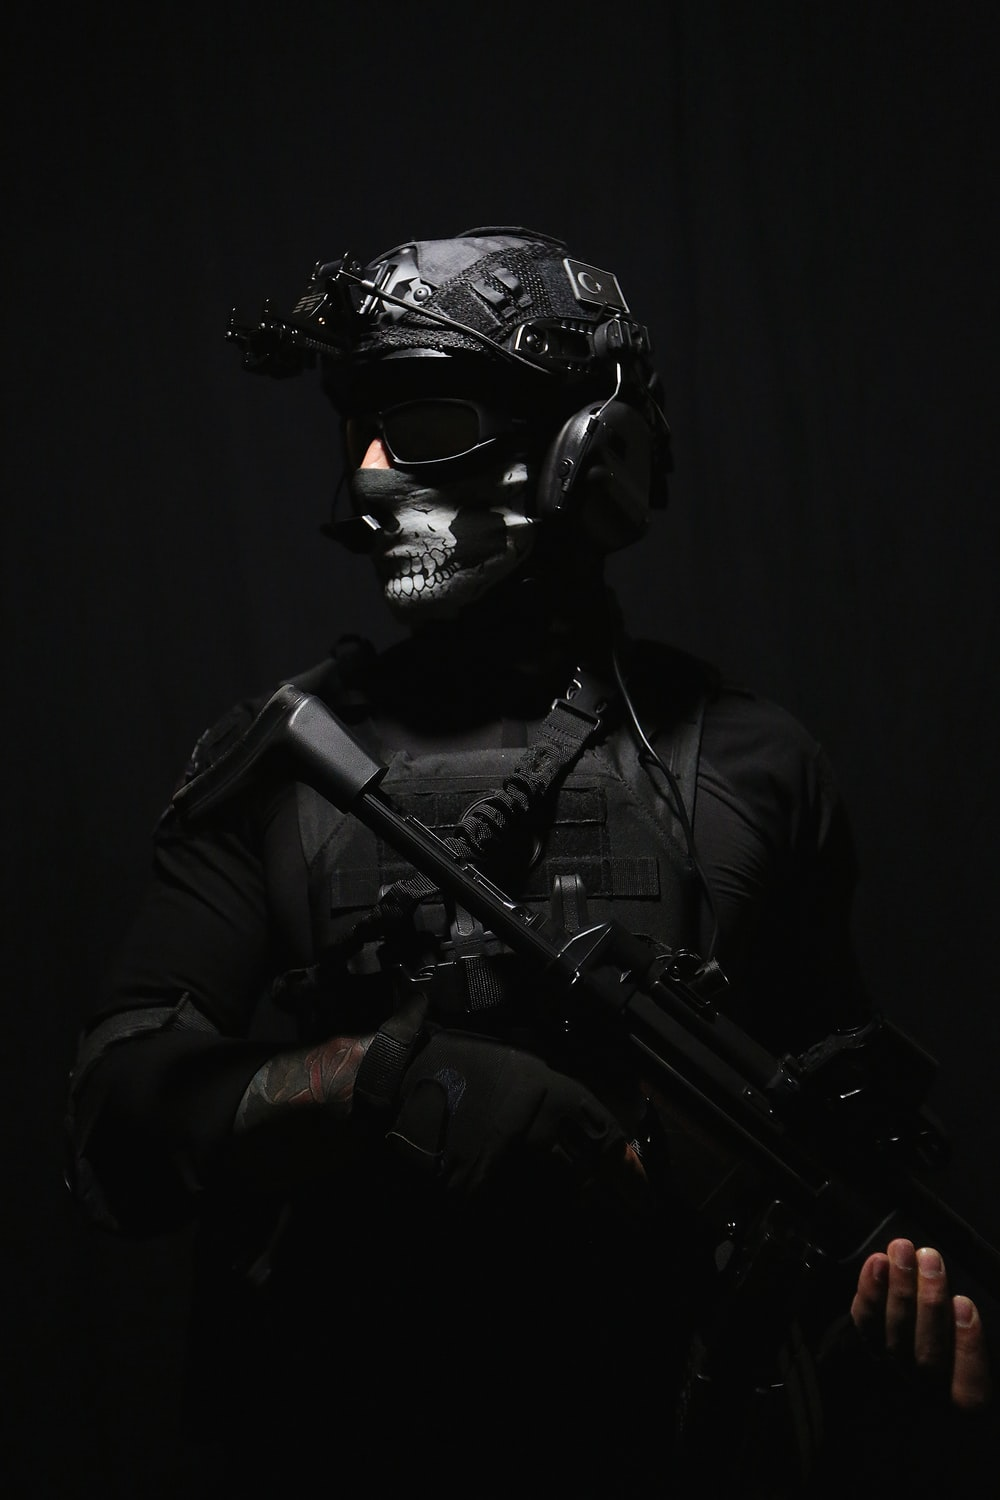 500 Soldier Pictures Hd Download Free Images On Unsplash